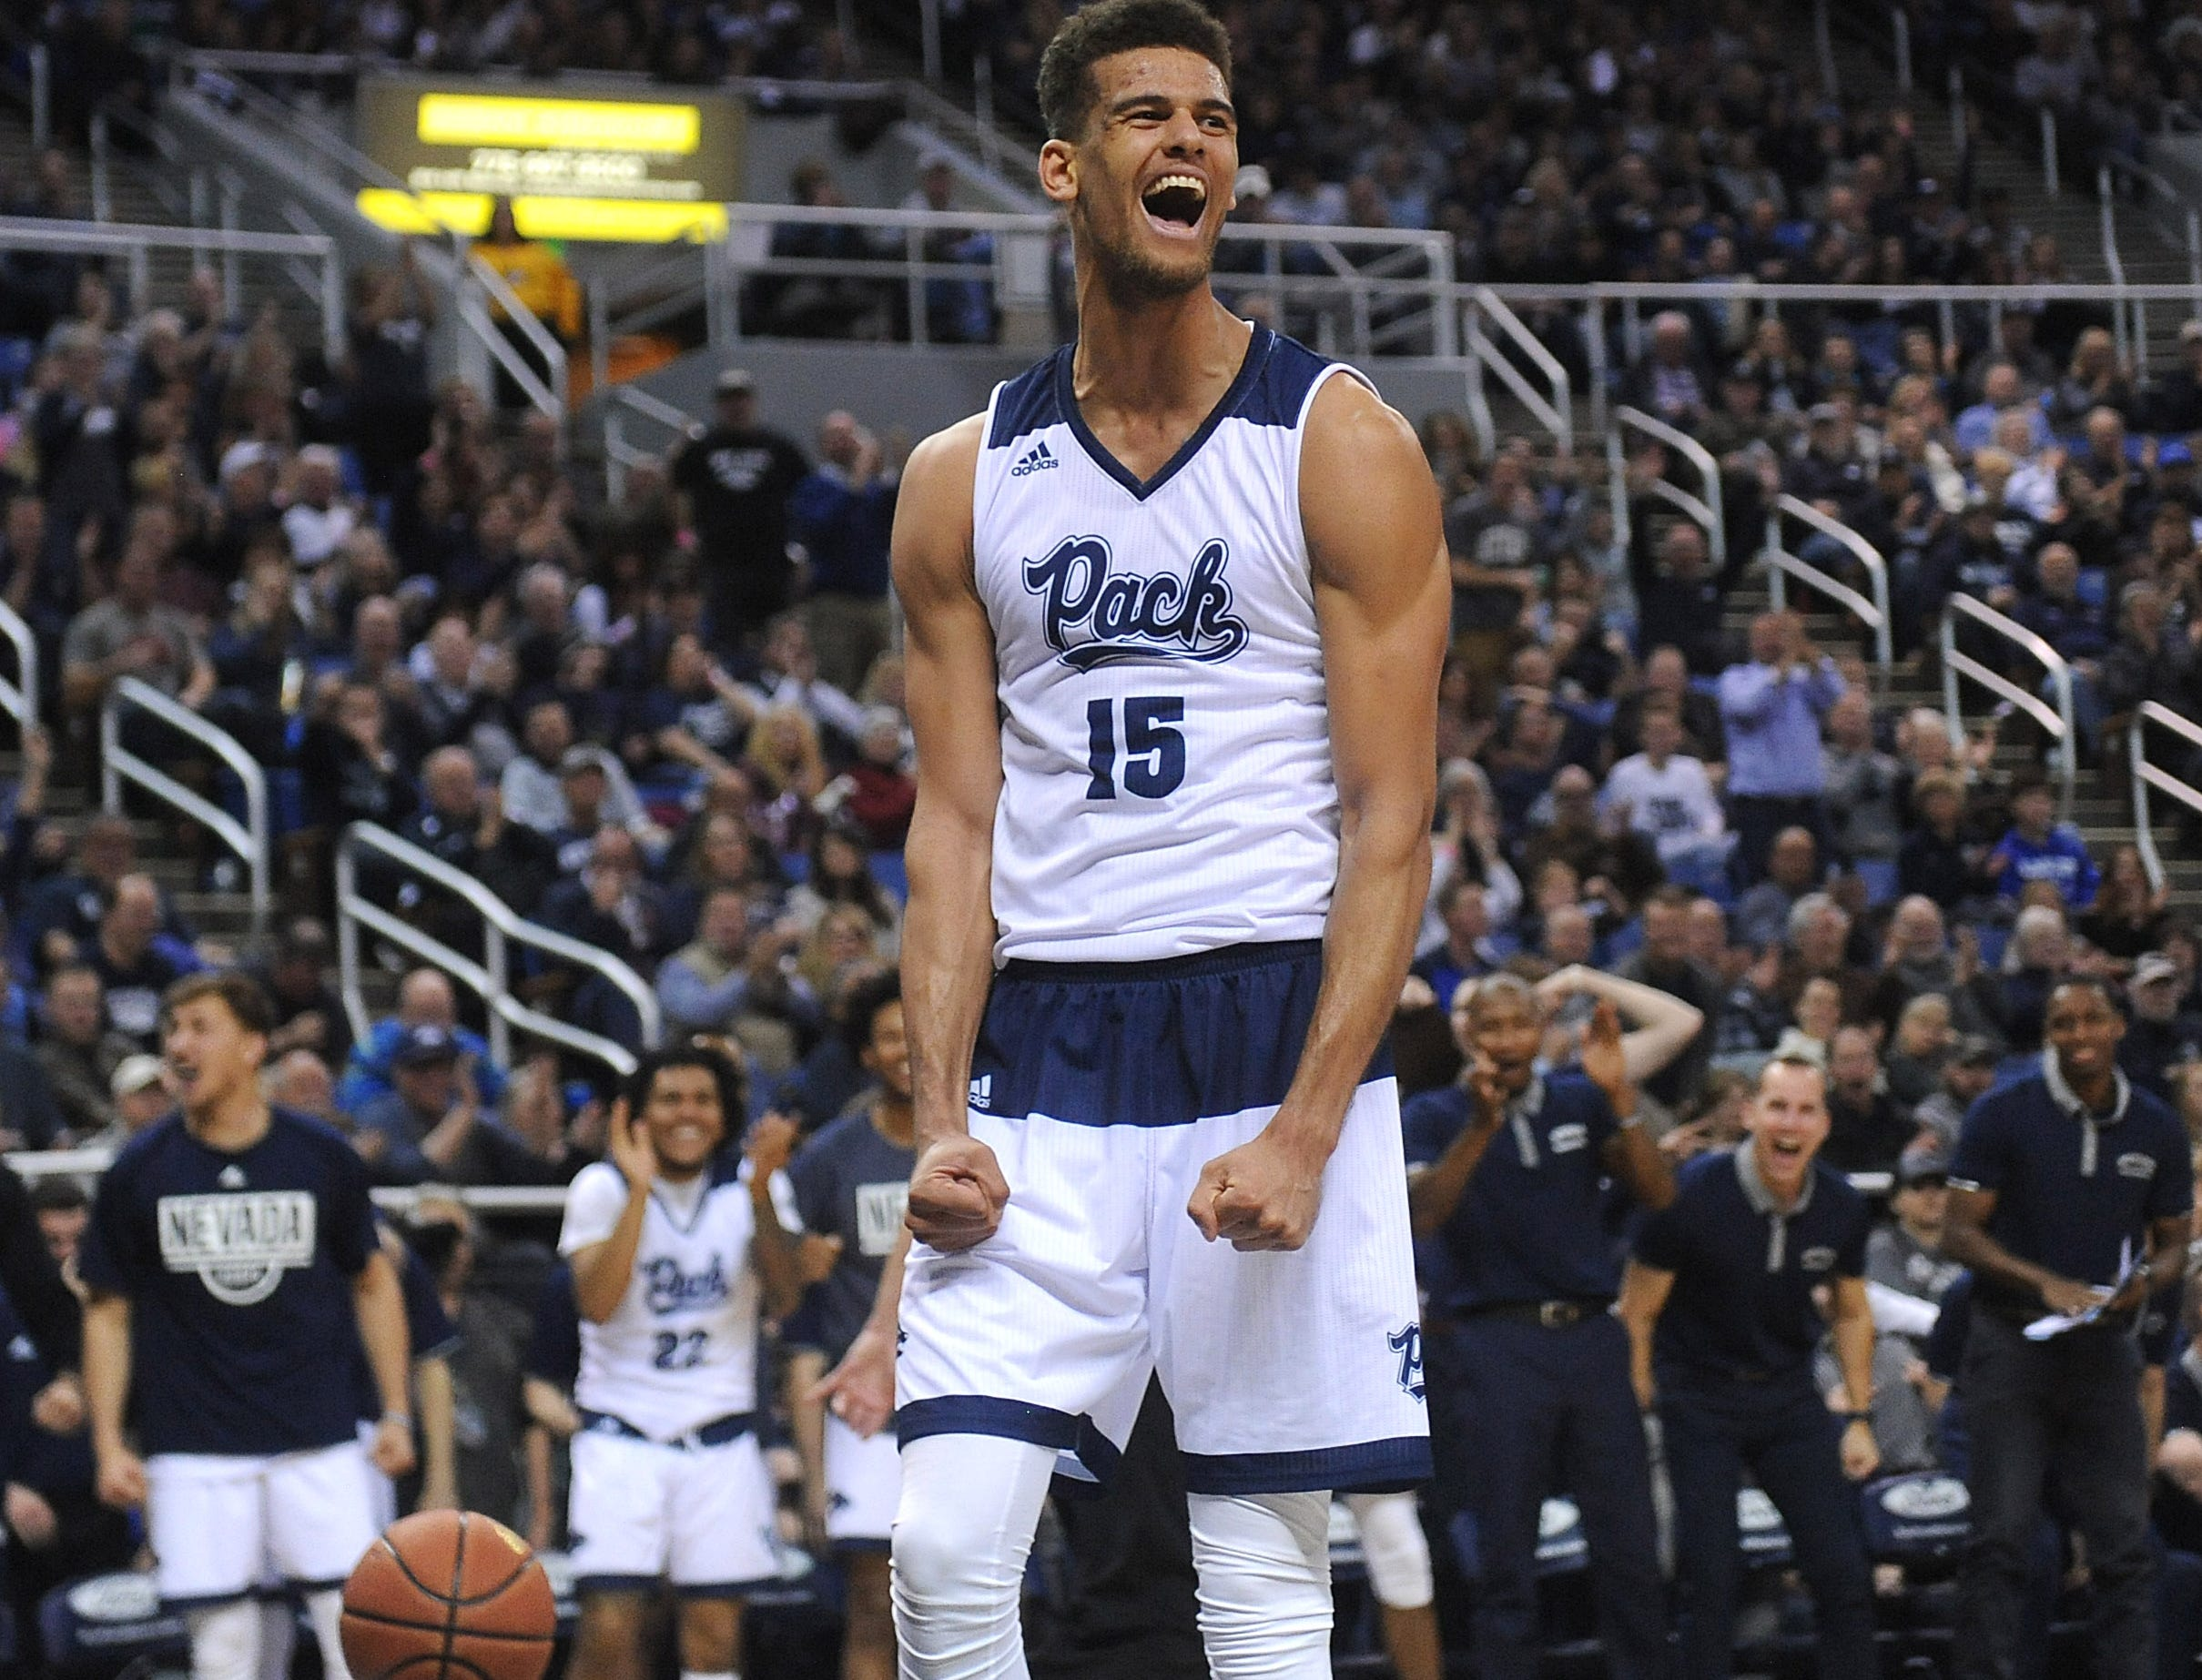 Nevada's Trey Porter celebrates after scoring against Utah St. during their basketball game at Lawlor Events Center in Reno on Jan. 2, 2019.